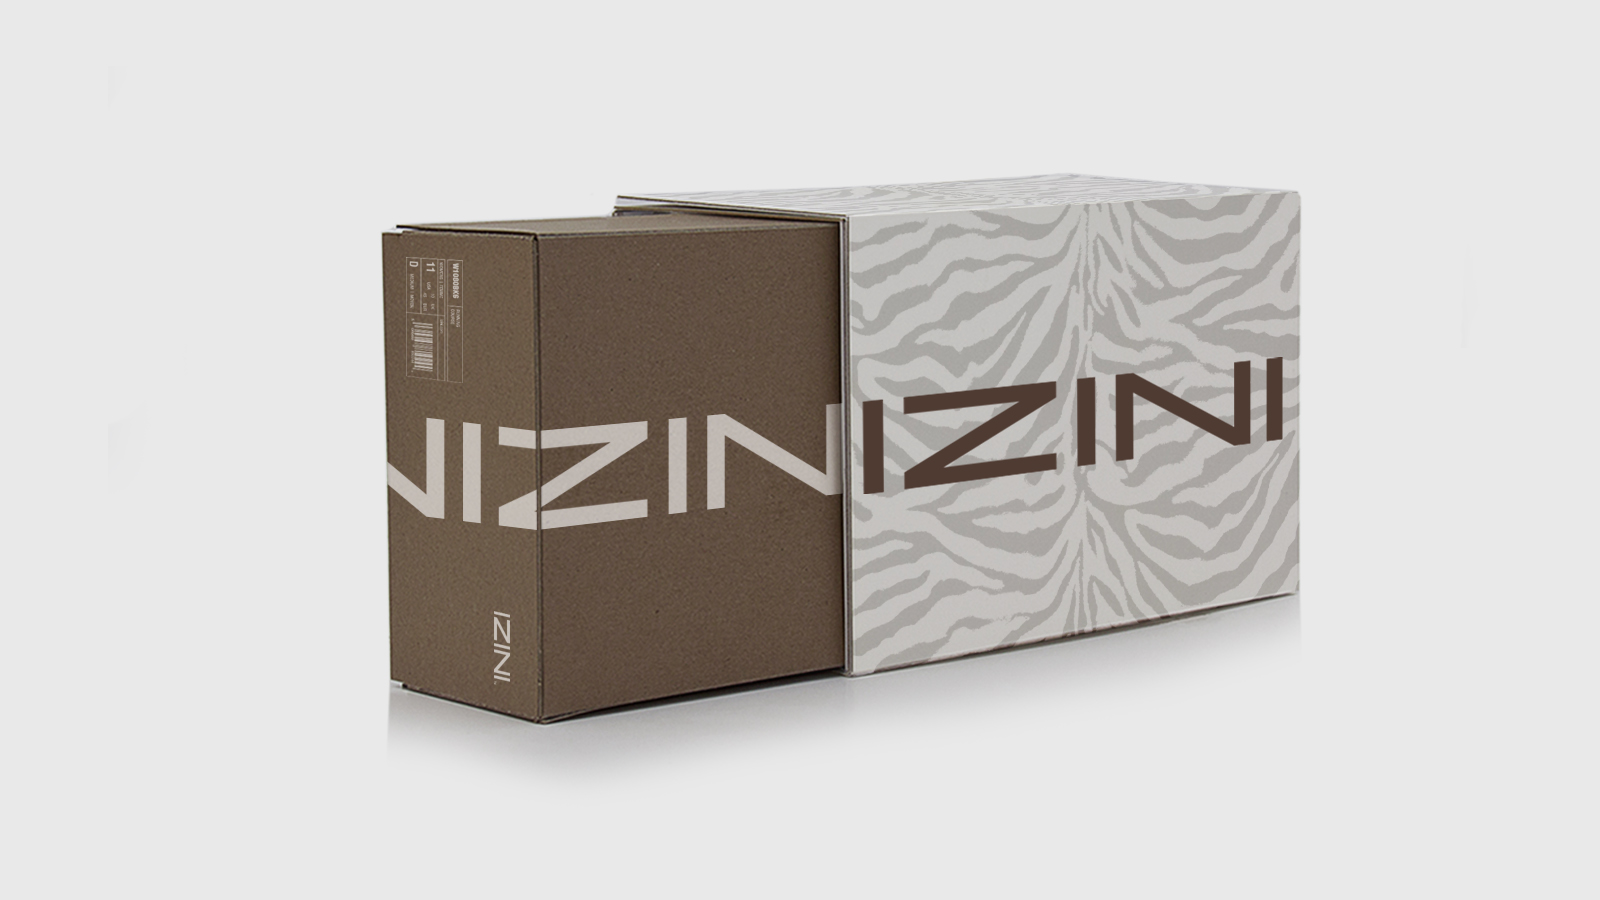 IZINI shoe box - just box.jpg